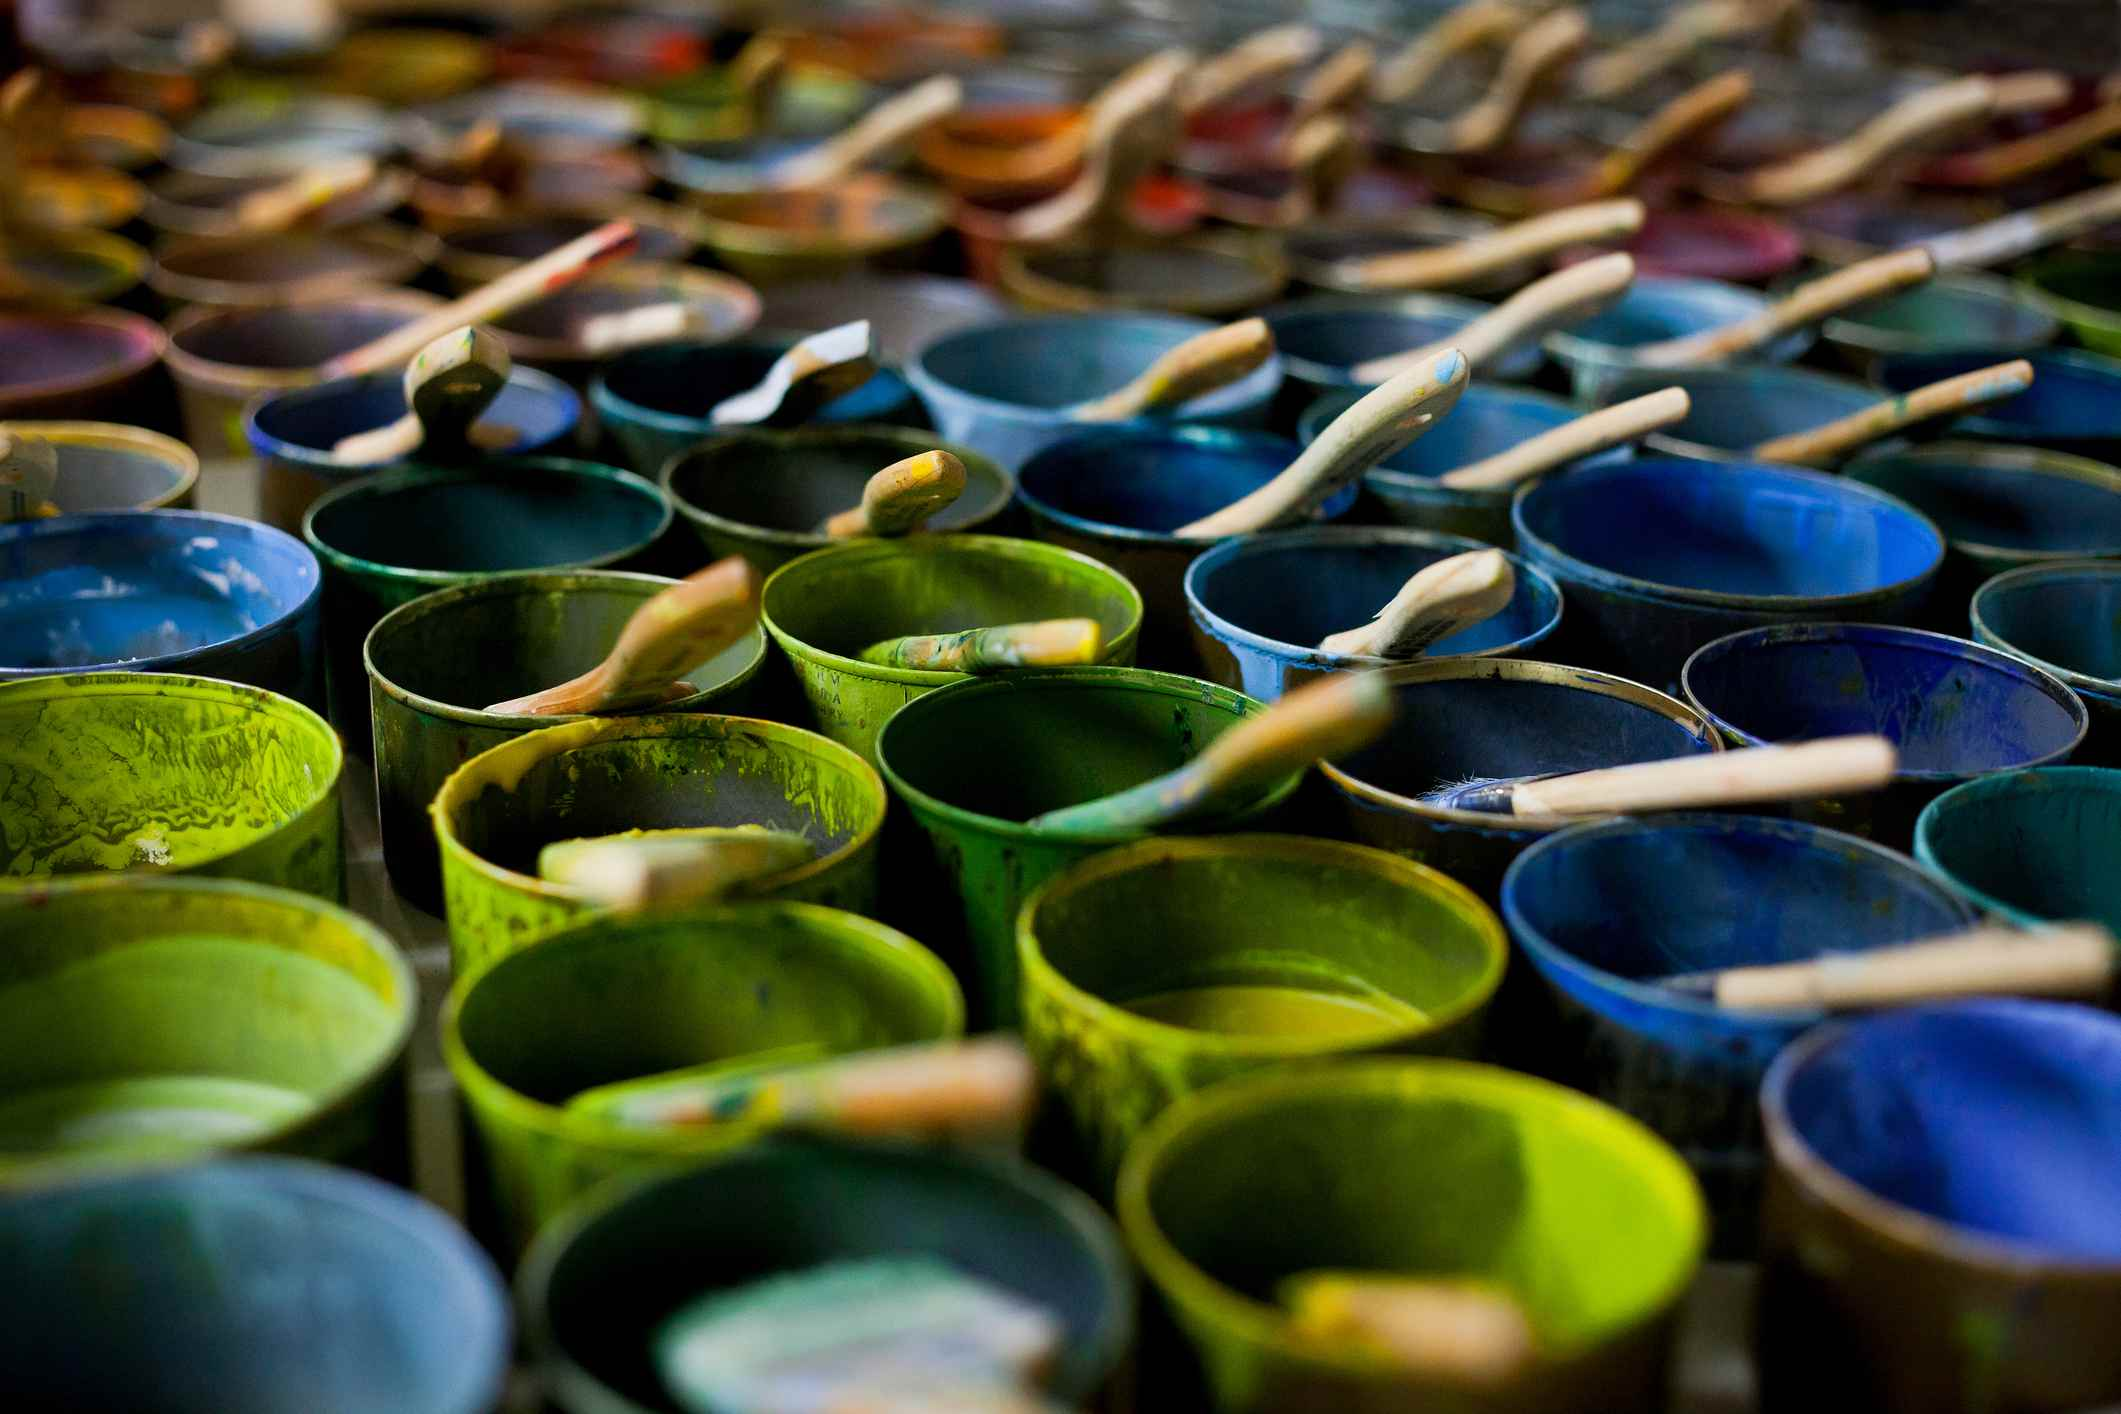 Colorful, small cans of paint with brushes in them